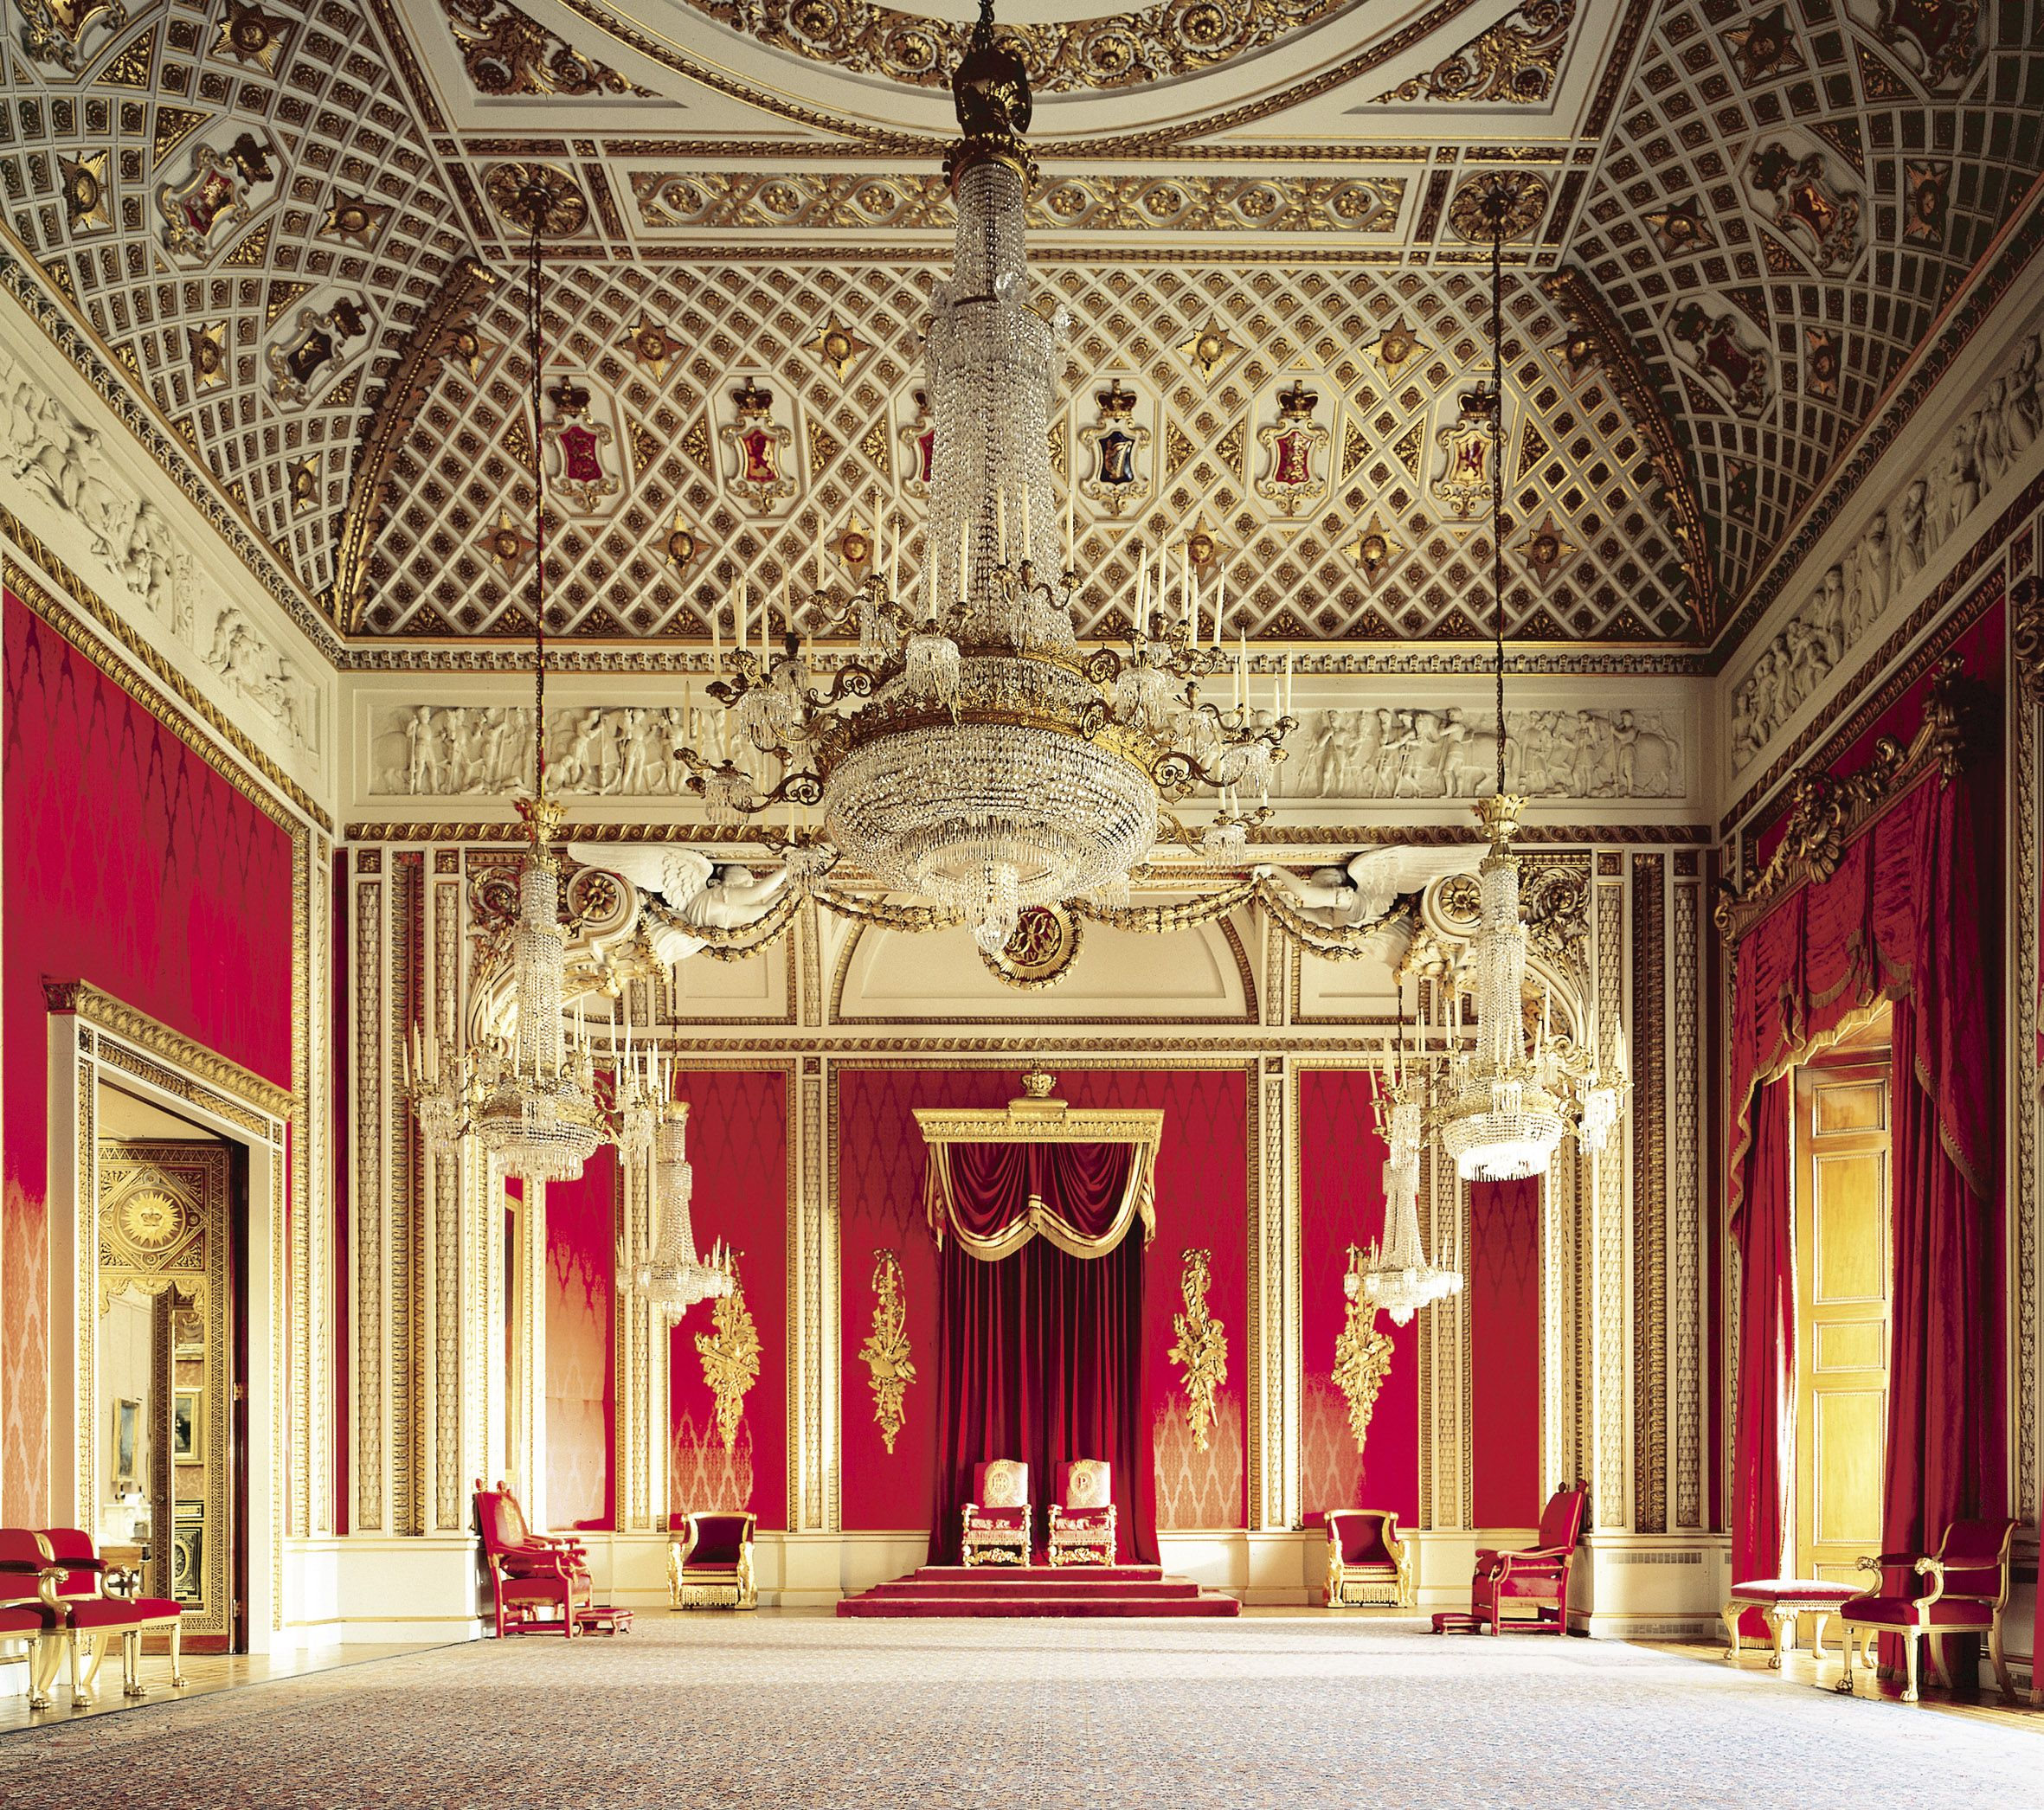 The Throne Room at Buckingham Palace.This room was so magnificent ...